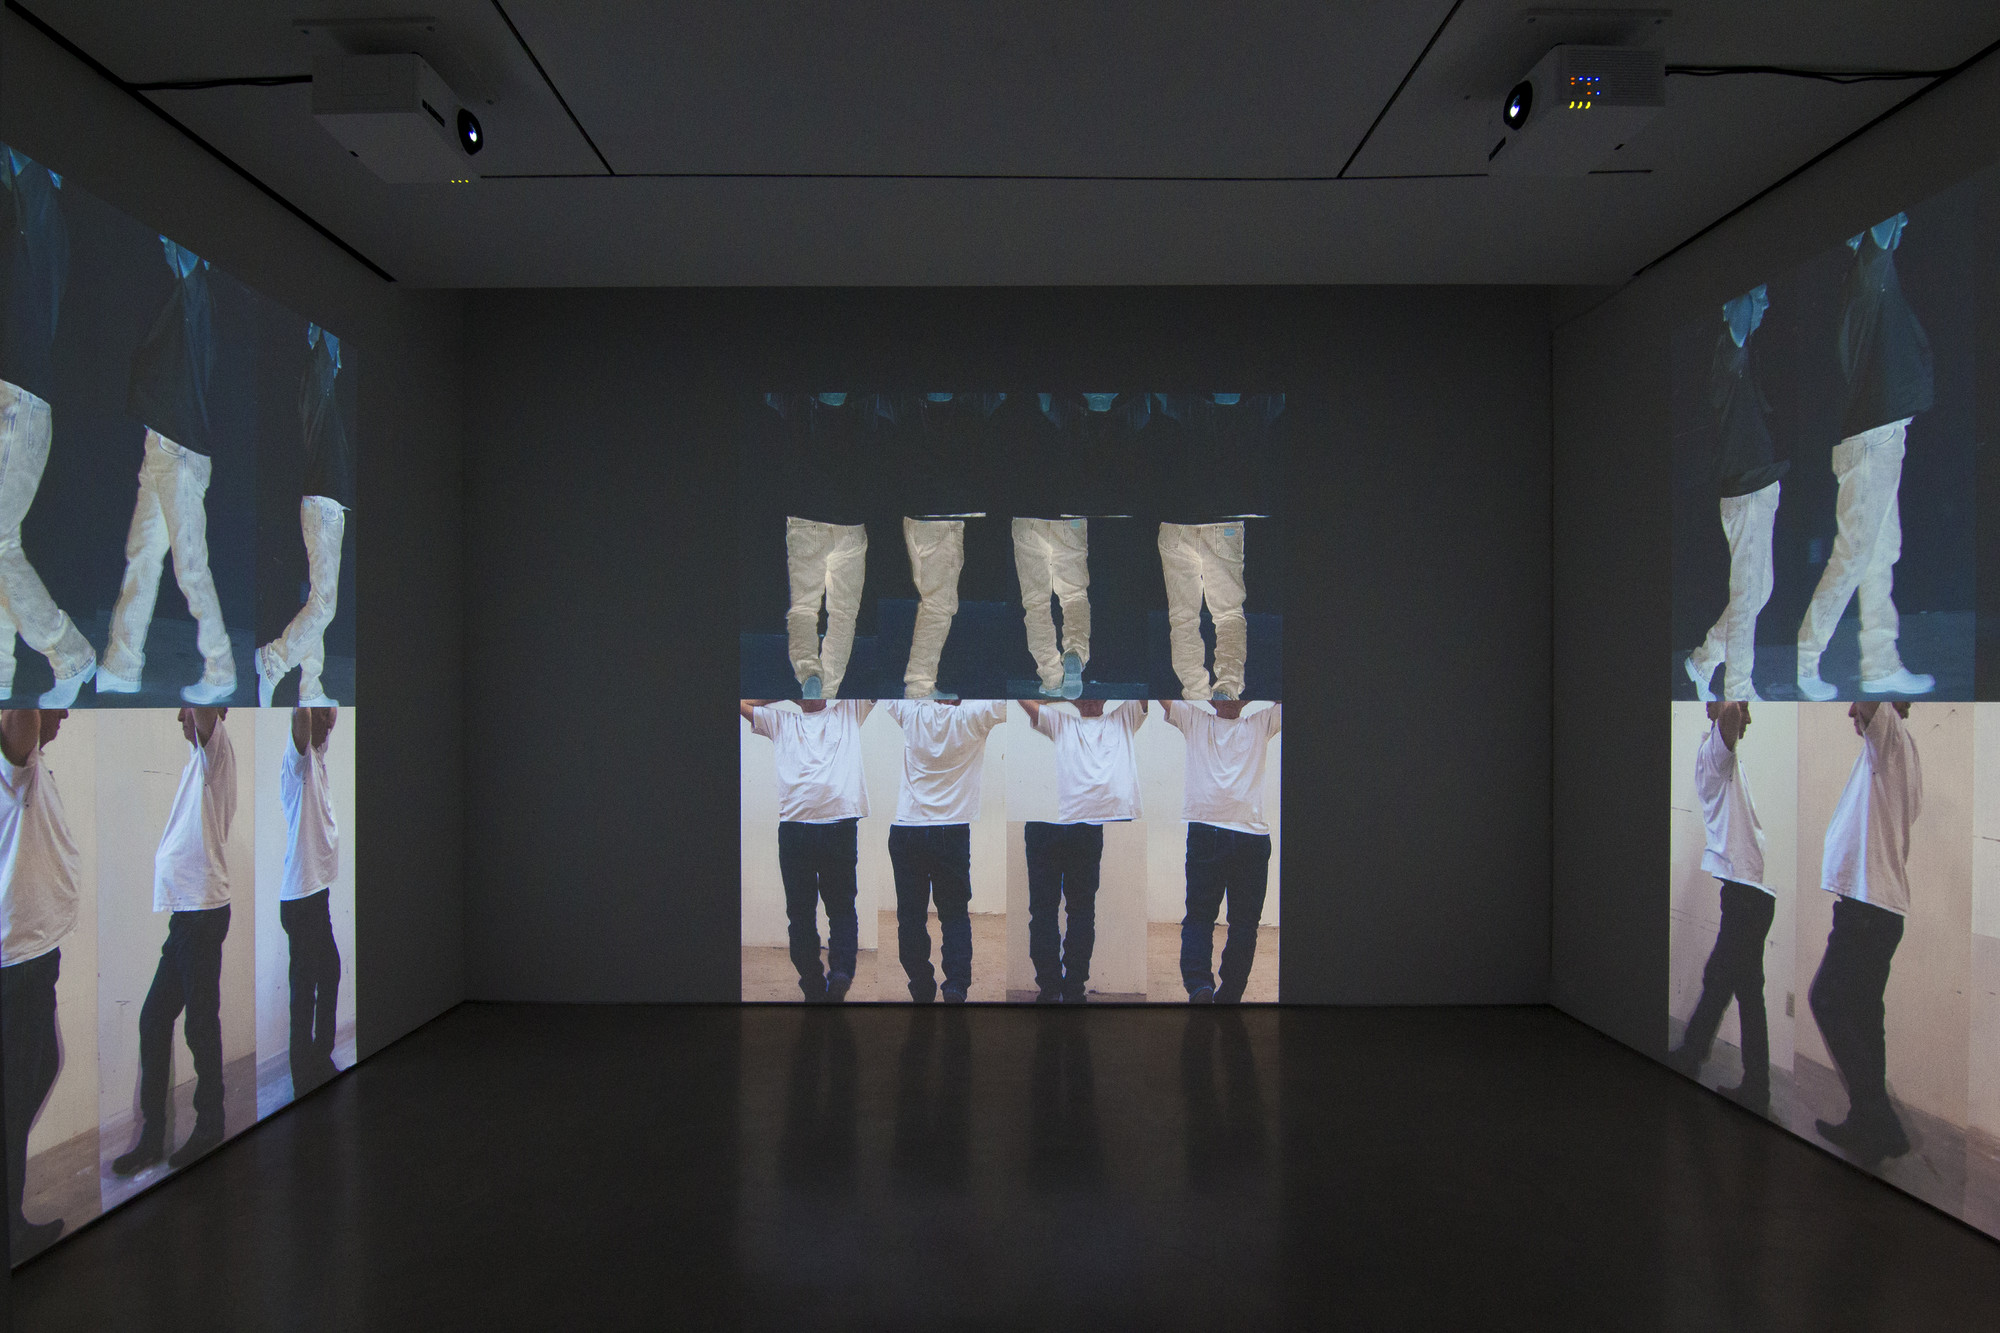 Bruce Nauman. Contrapposto Studies, i through vii. 2015/2016